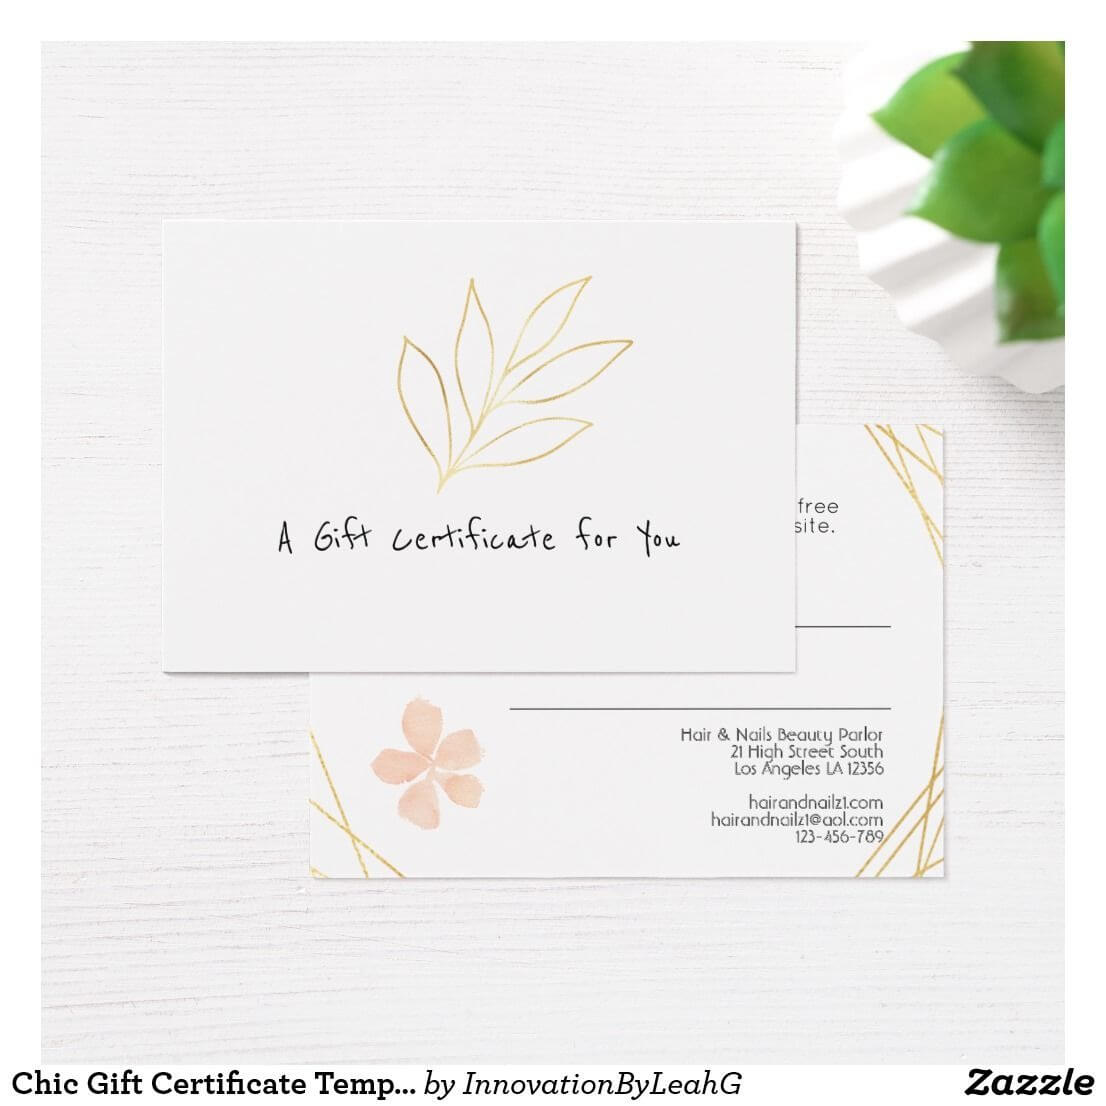 Chic Gift Certificate Template Add Logo Gold Leaf | Zazzle Pertaining To Elegant Gift Certificate Template